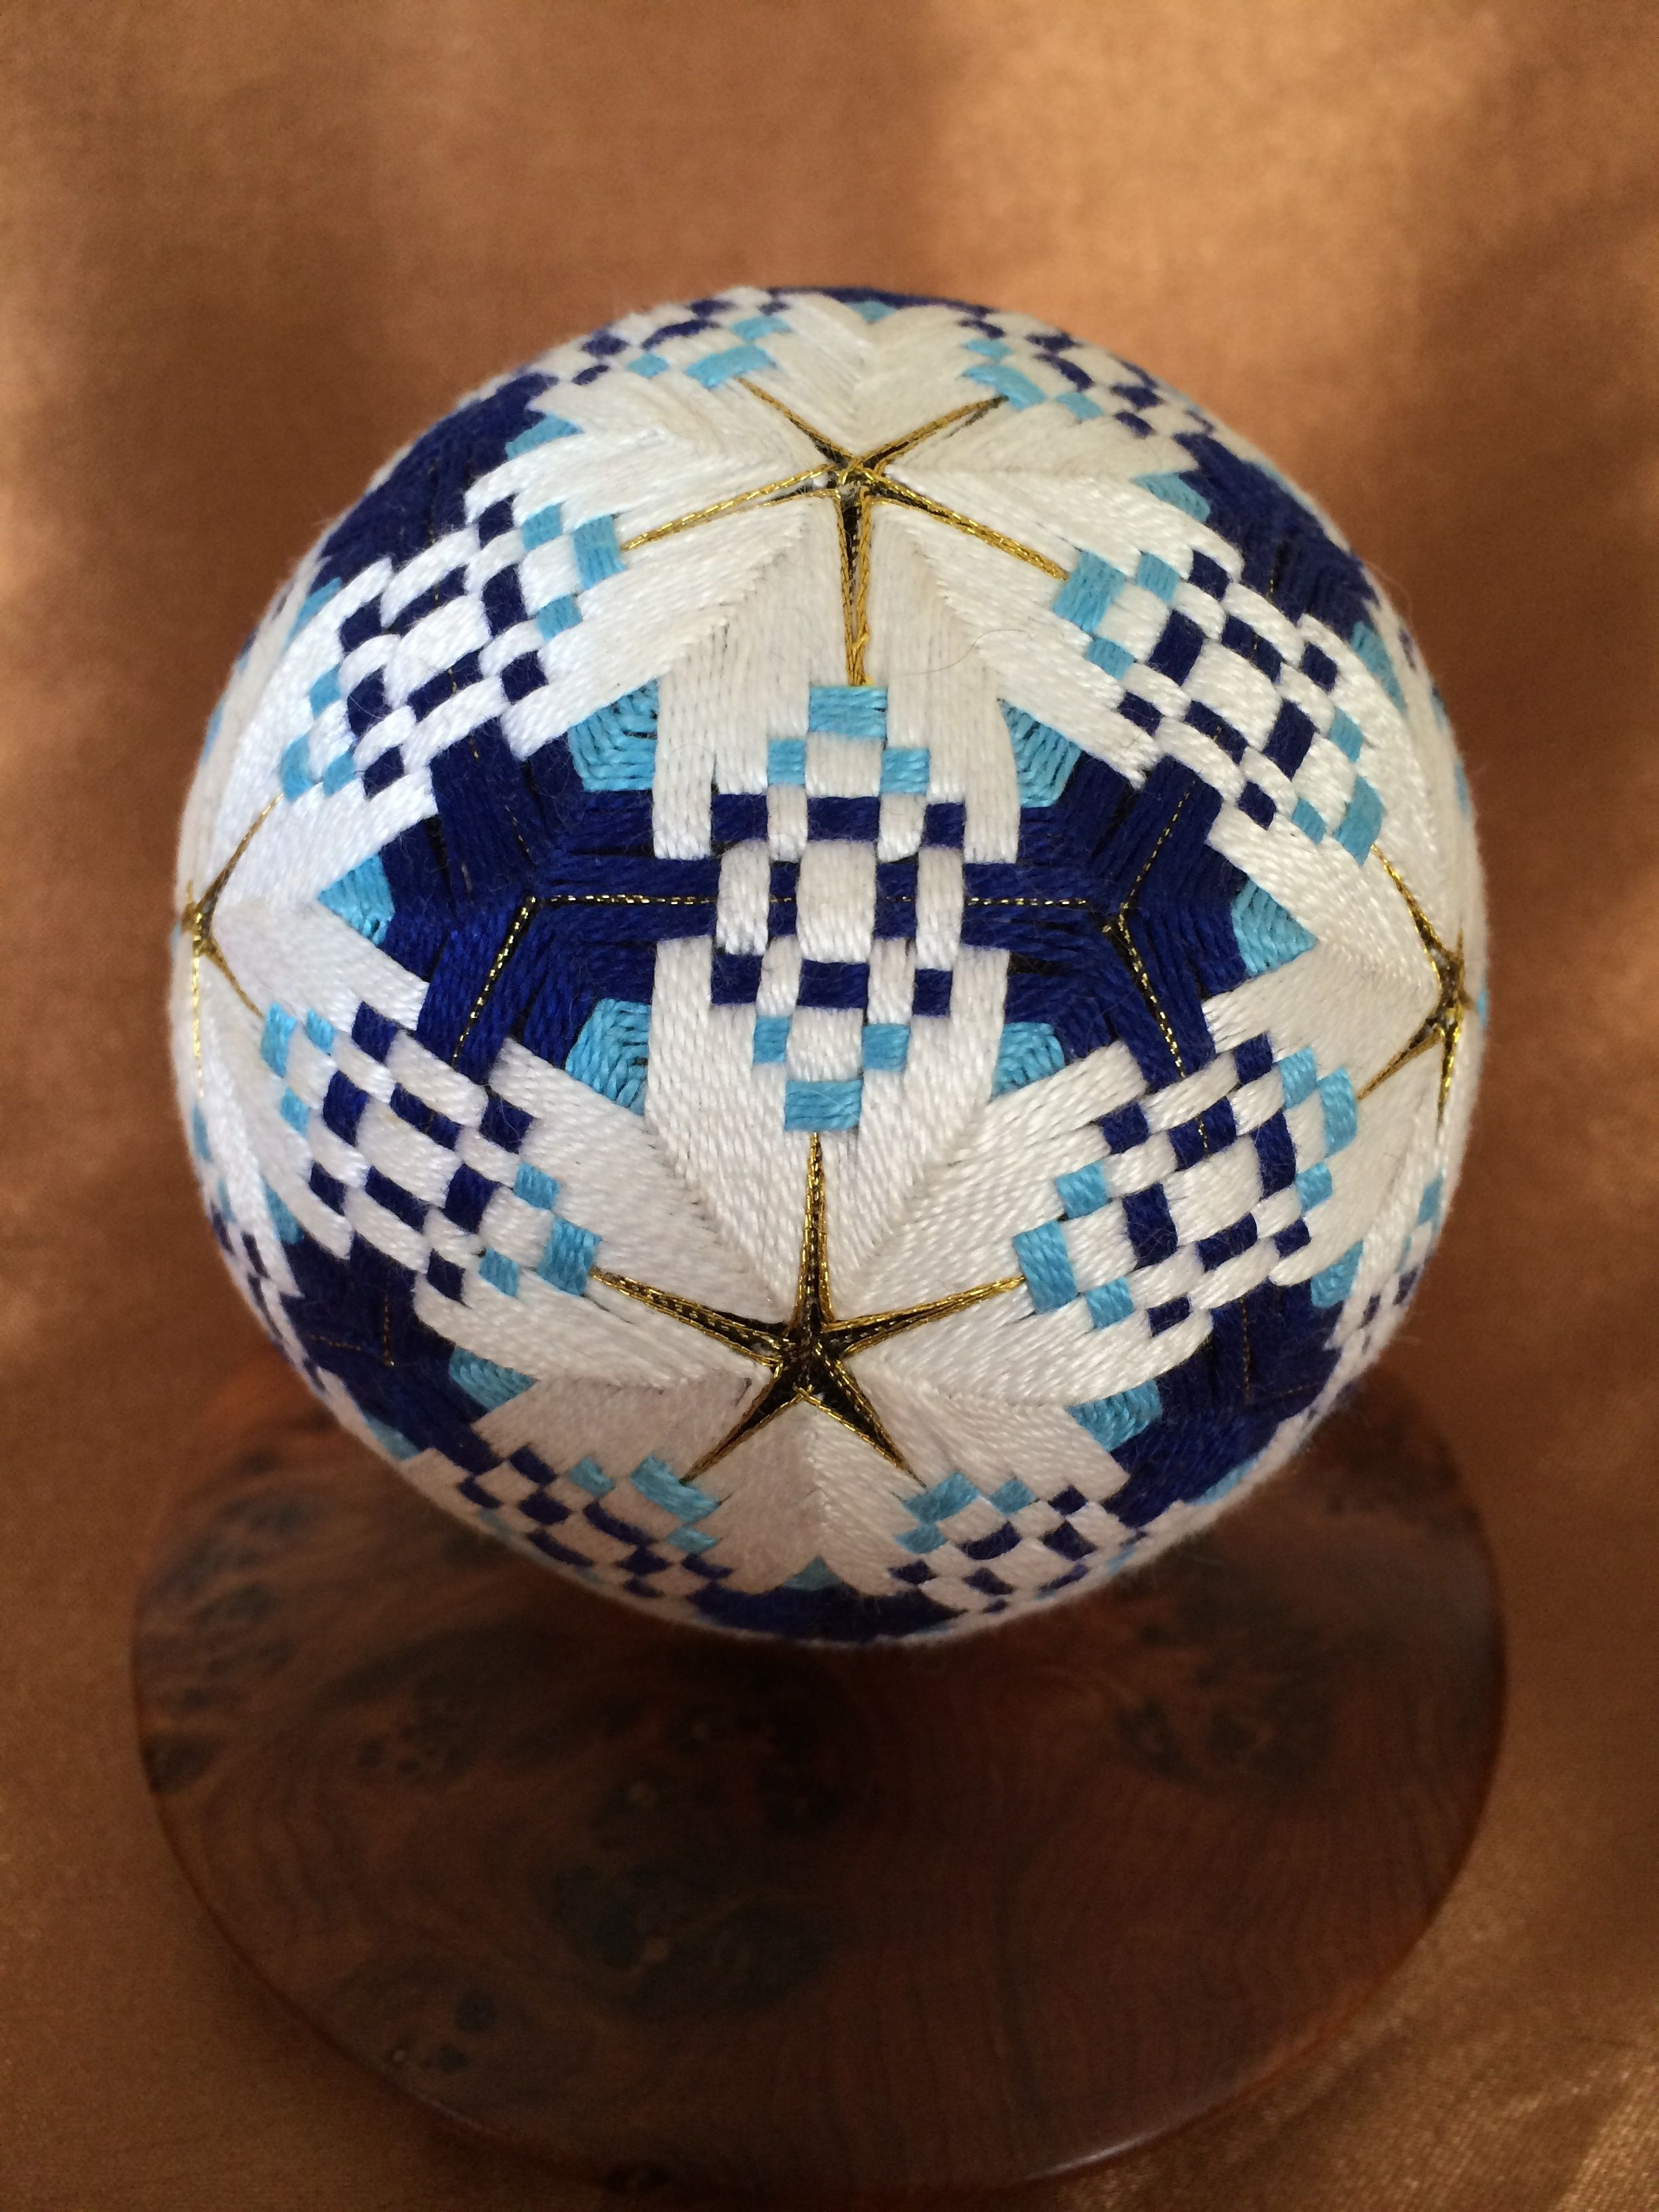 Temari Patterns, Easy Crafts, Golf Ball, Taylormade, Thread Art, Crepe